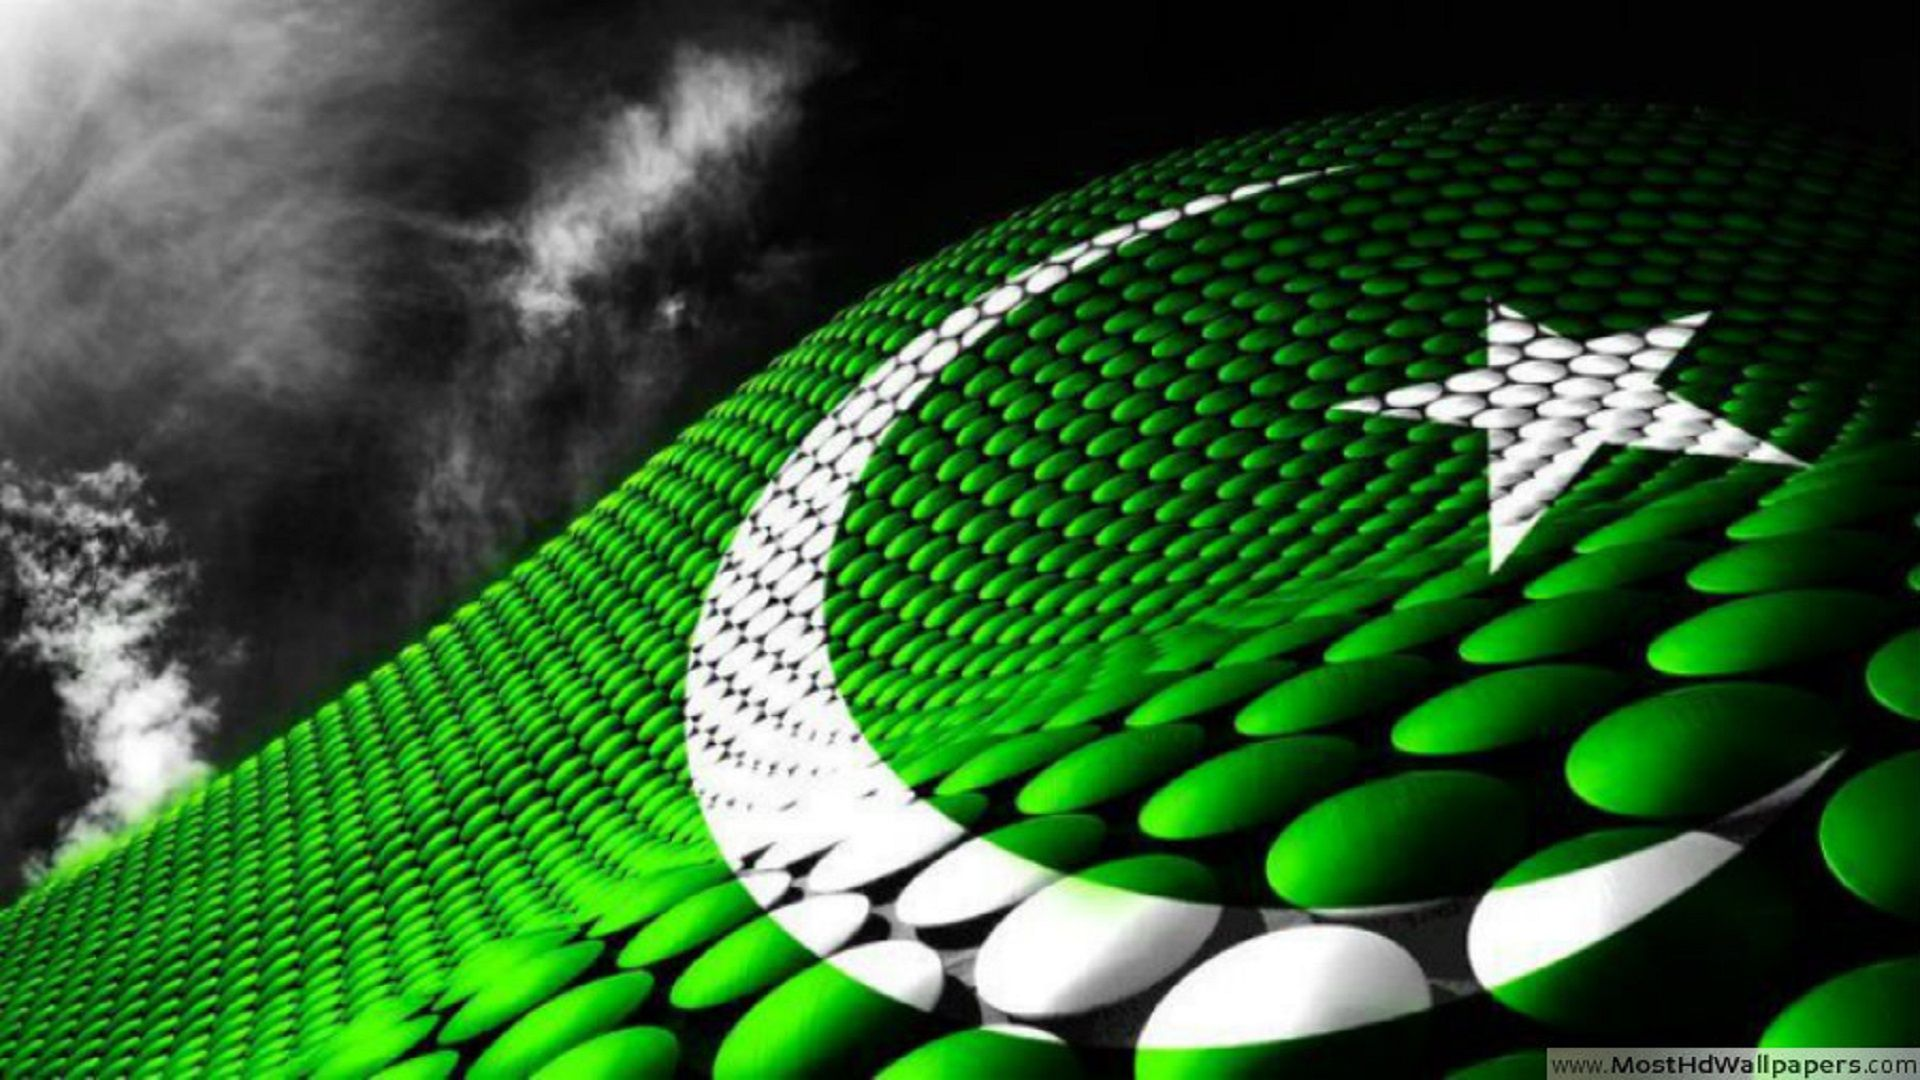 This Is My Pakistan August Wallpaper Independence Day Wallpaper 14 August Wallpapers